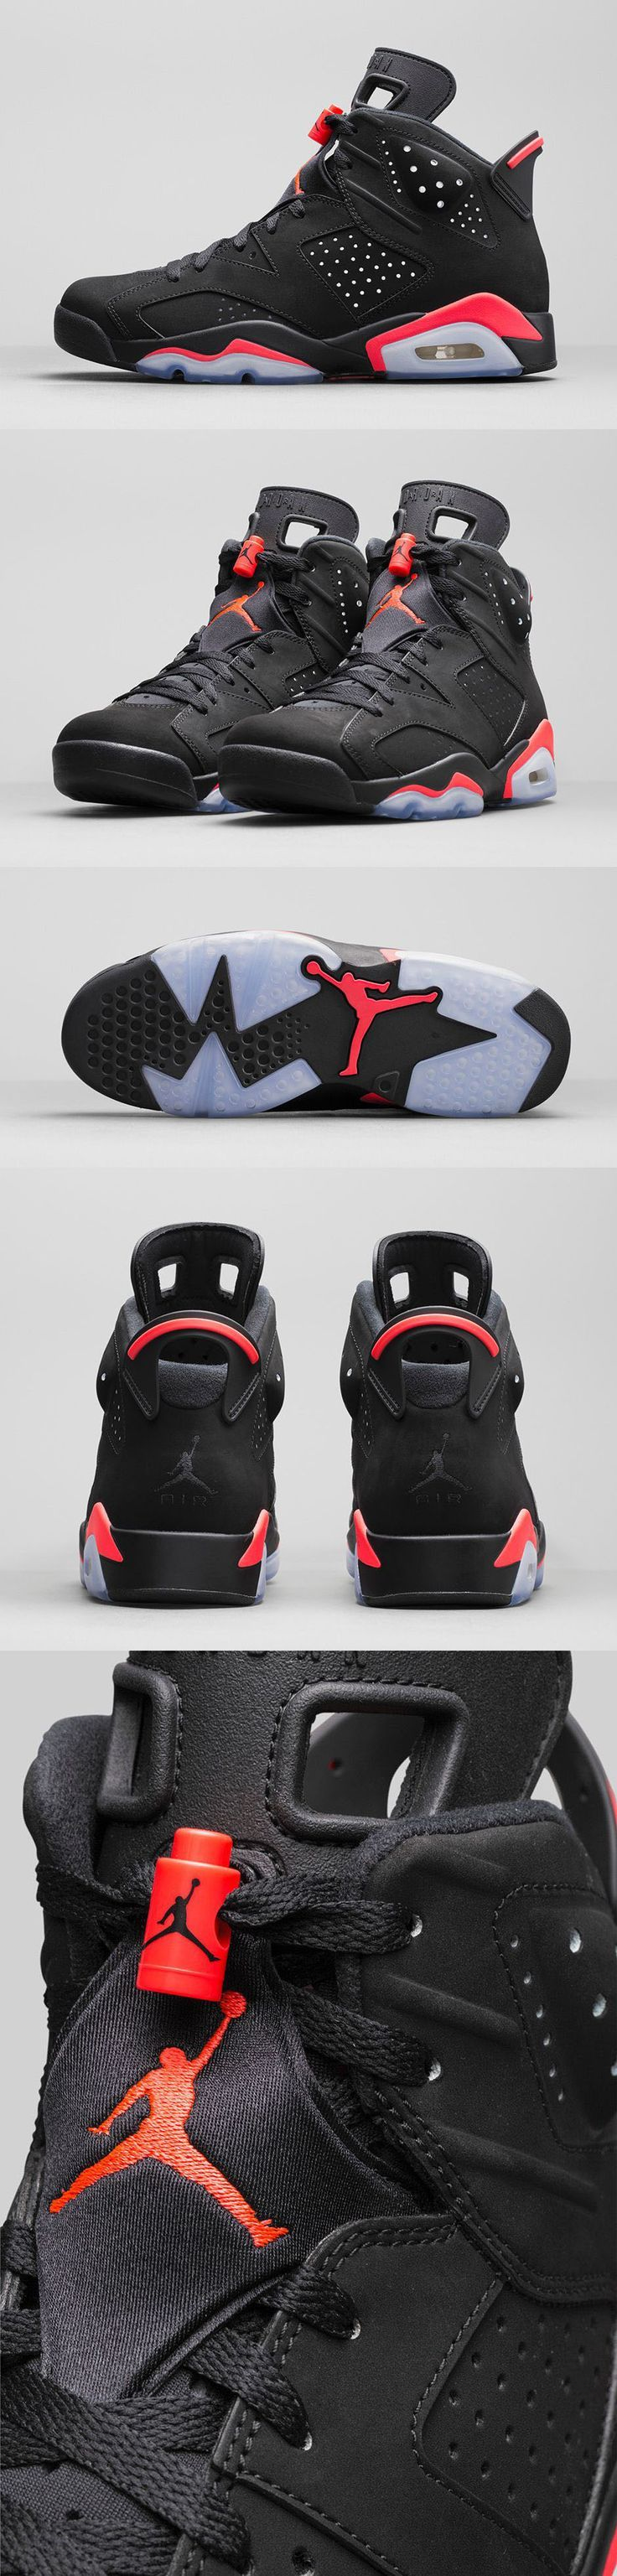 Shop today for the hottest brands in Jordan sneakers,2015 fashion  styles,$44.8 .